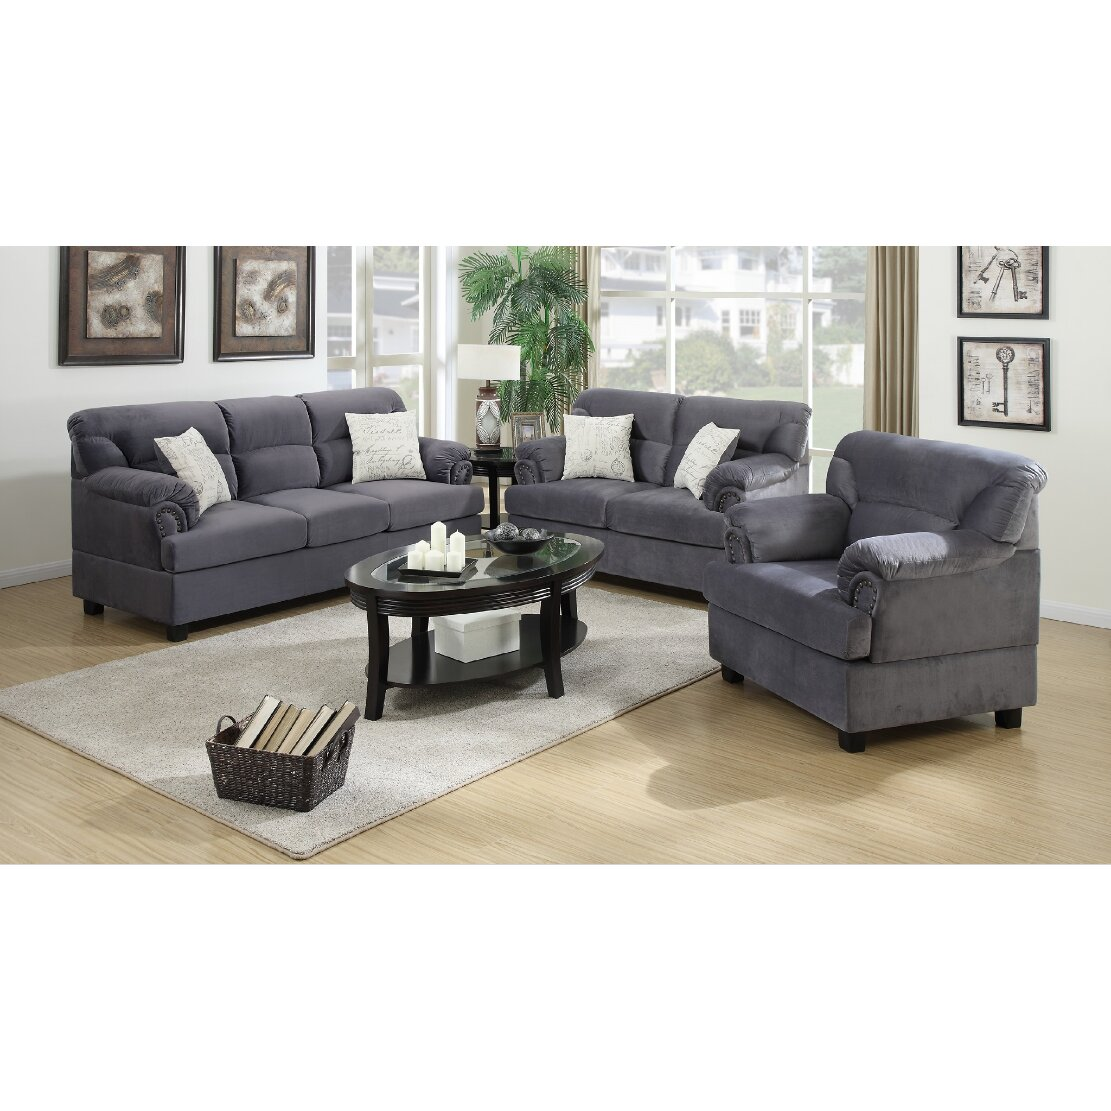 A Amp J Homes Studio Penny 3 Piece Living Room Set Wayfair